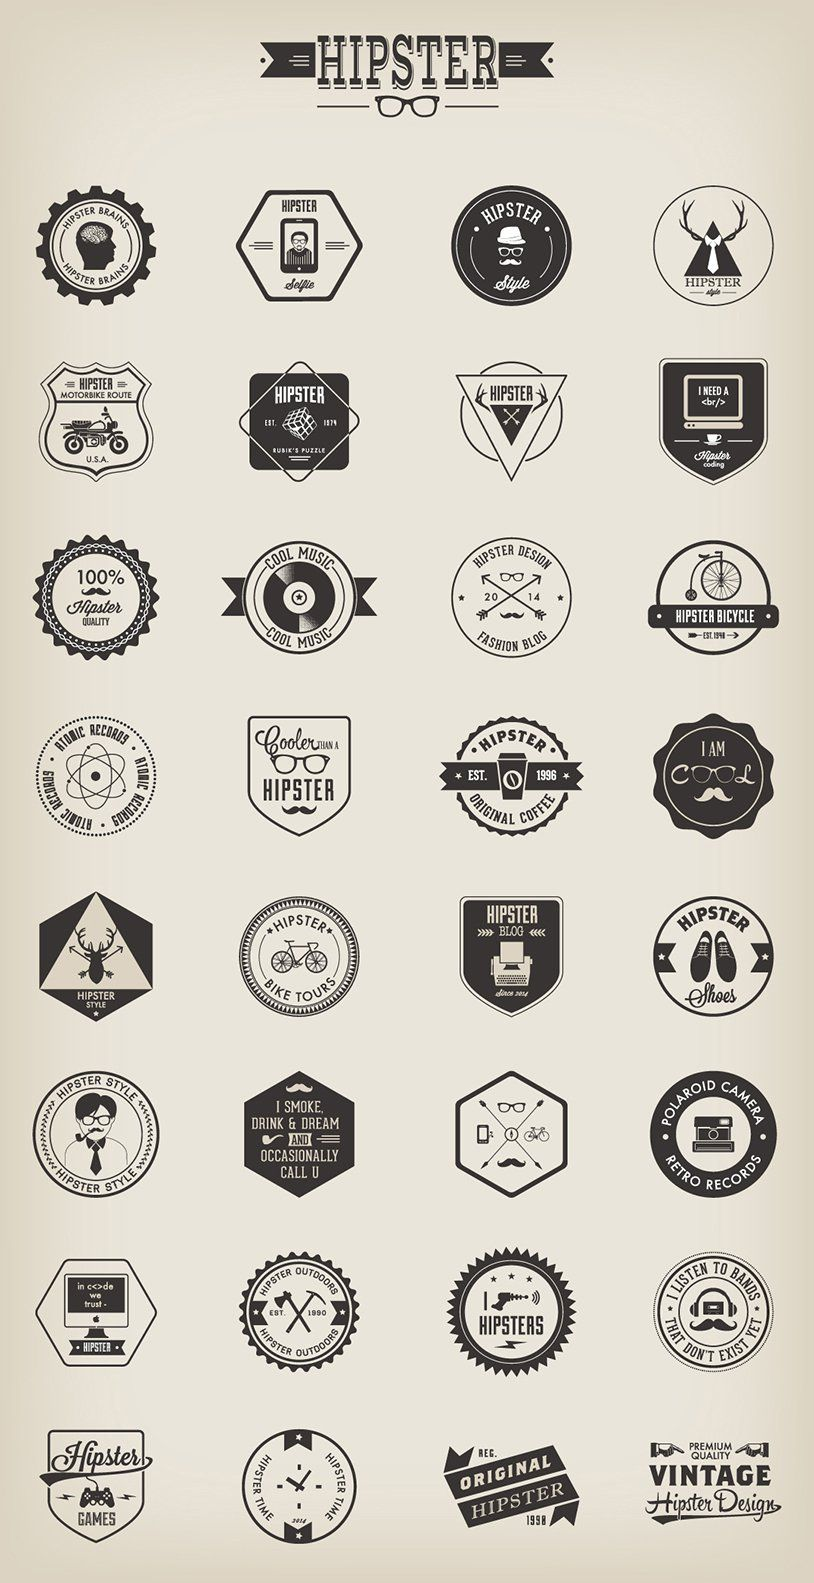 Free Vector Hipster Badges Graphic Design Resources